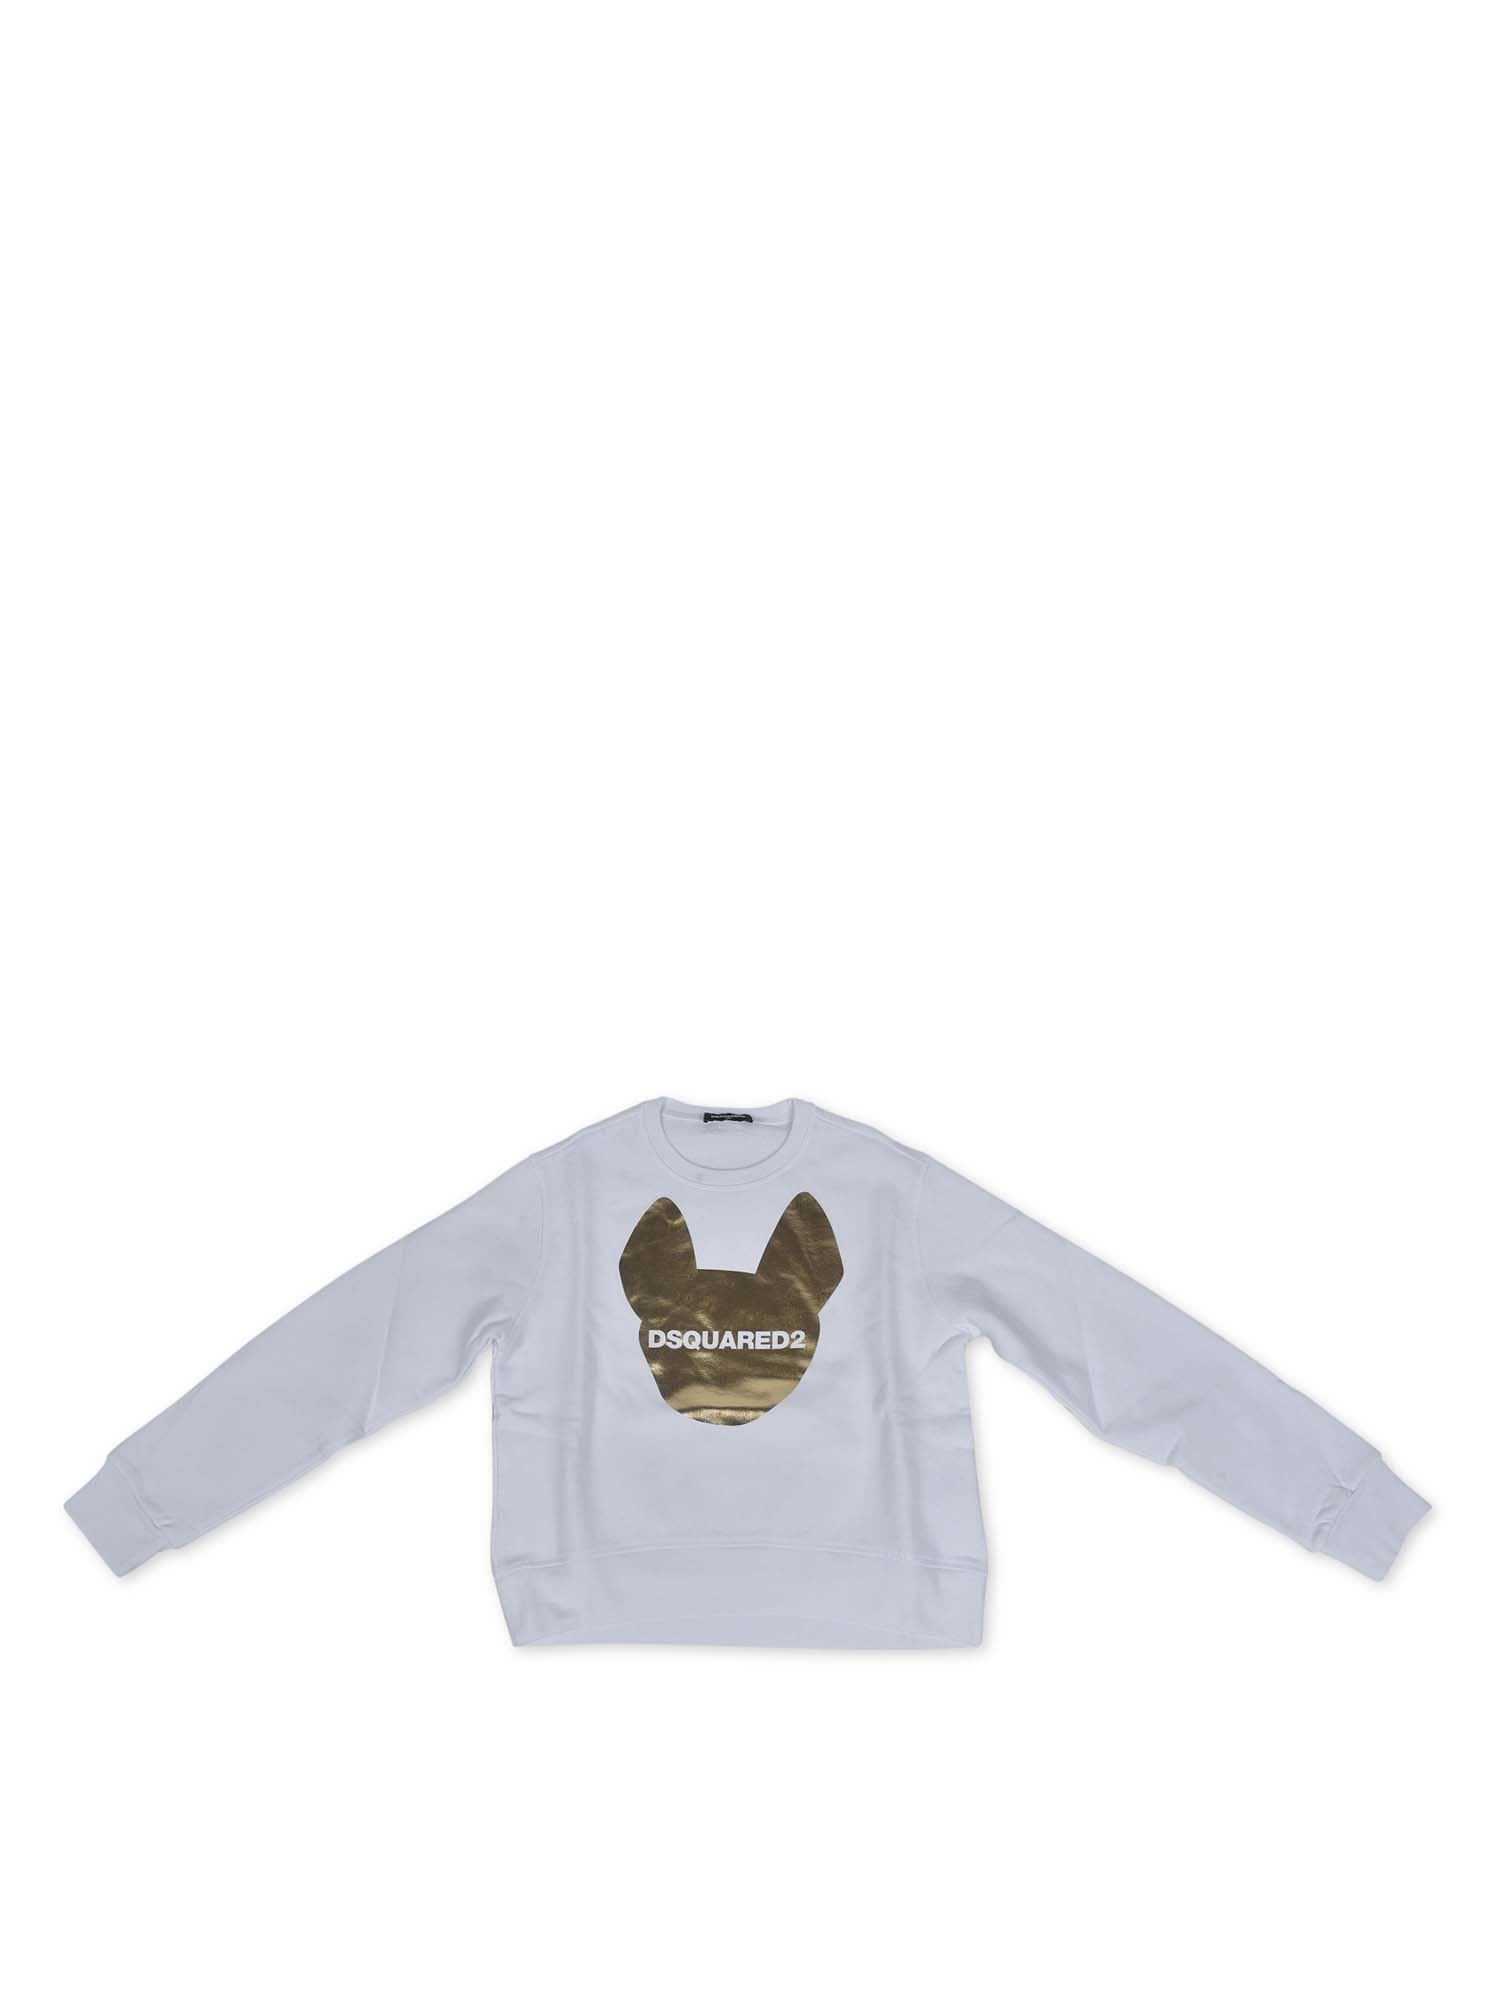 Dsquared2 SWEATSHIRT WITH LOGO PRINT IN WHITE